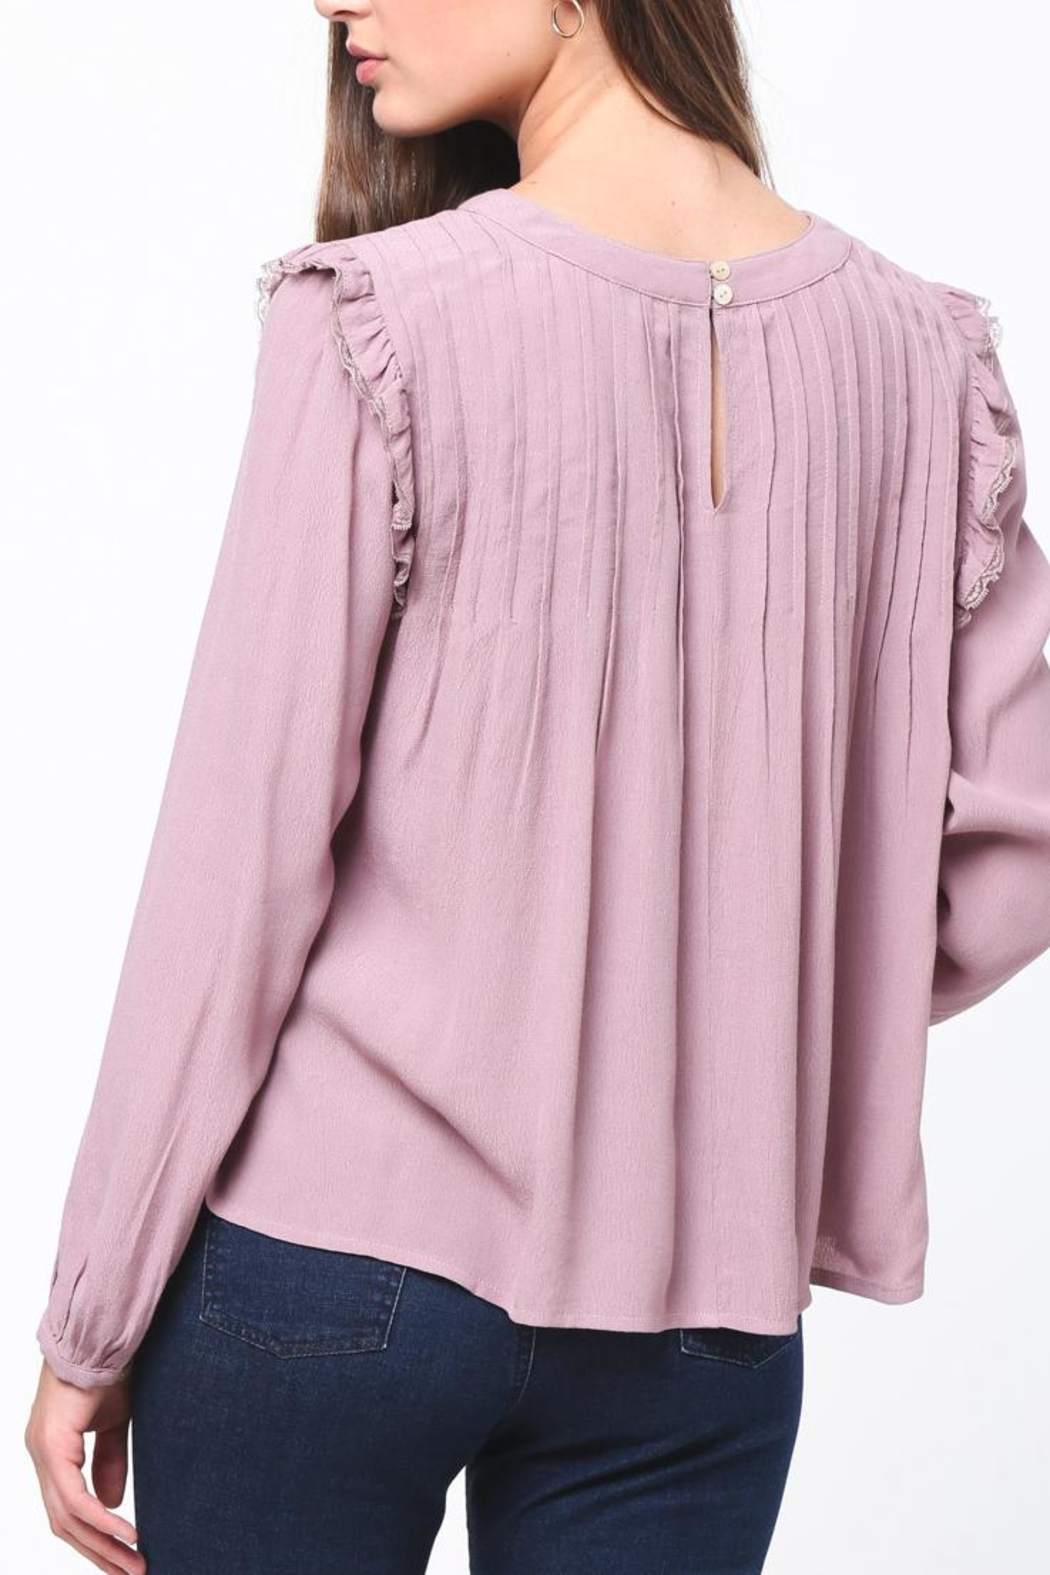 Movint Pintuck Ruffle Top - Side Cropped Image